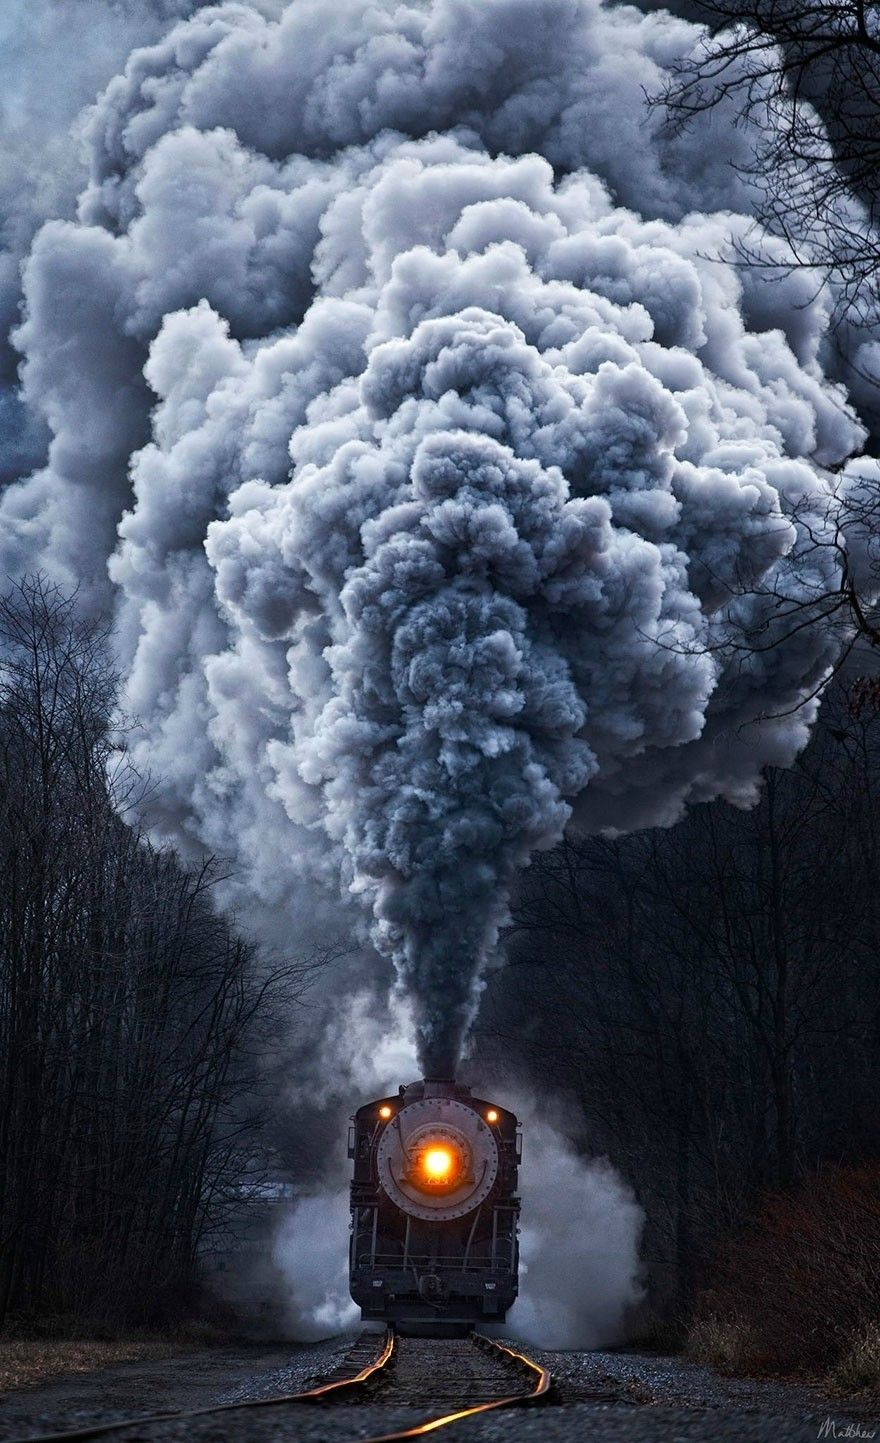 There's something grandiose about the sight of a steam locomotive rumbling down the tracks.